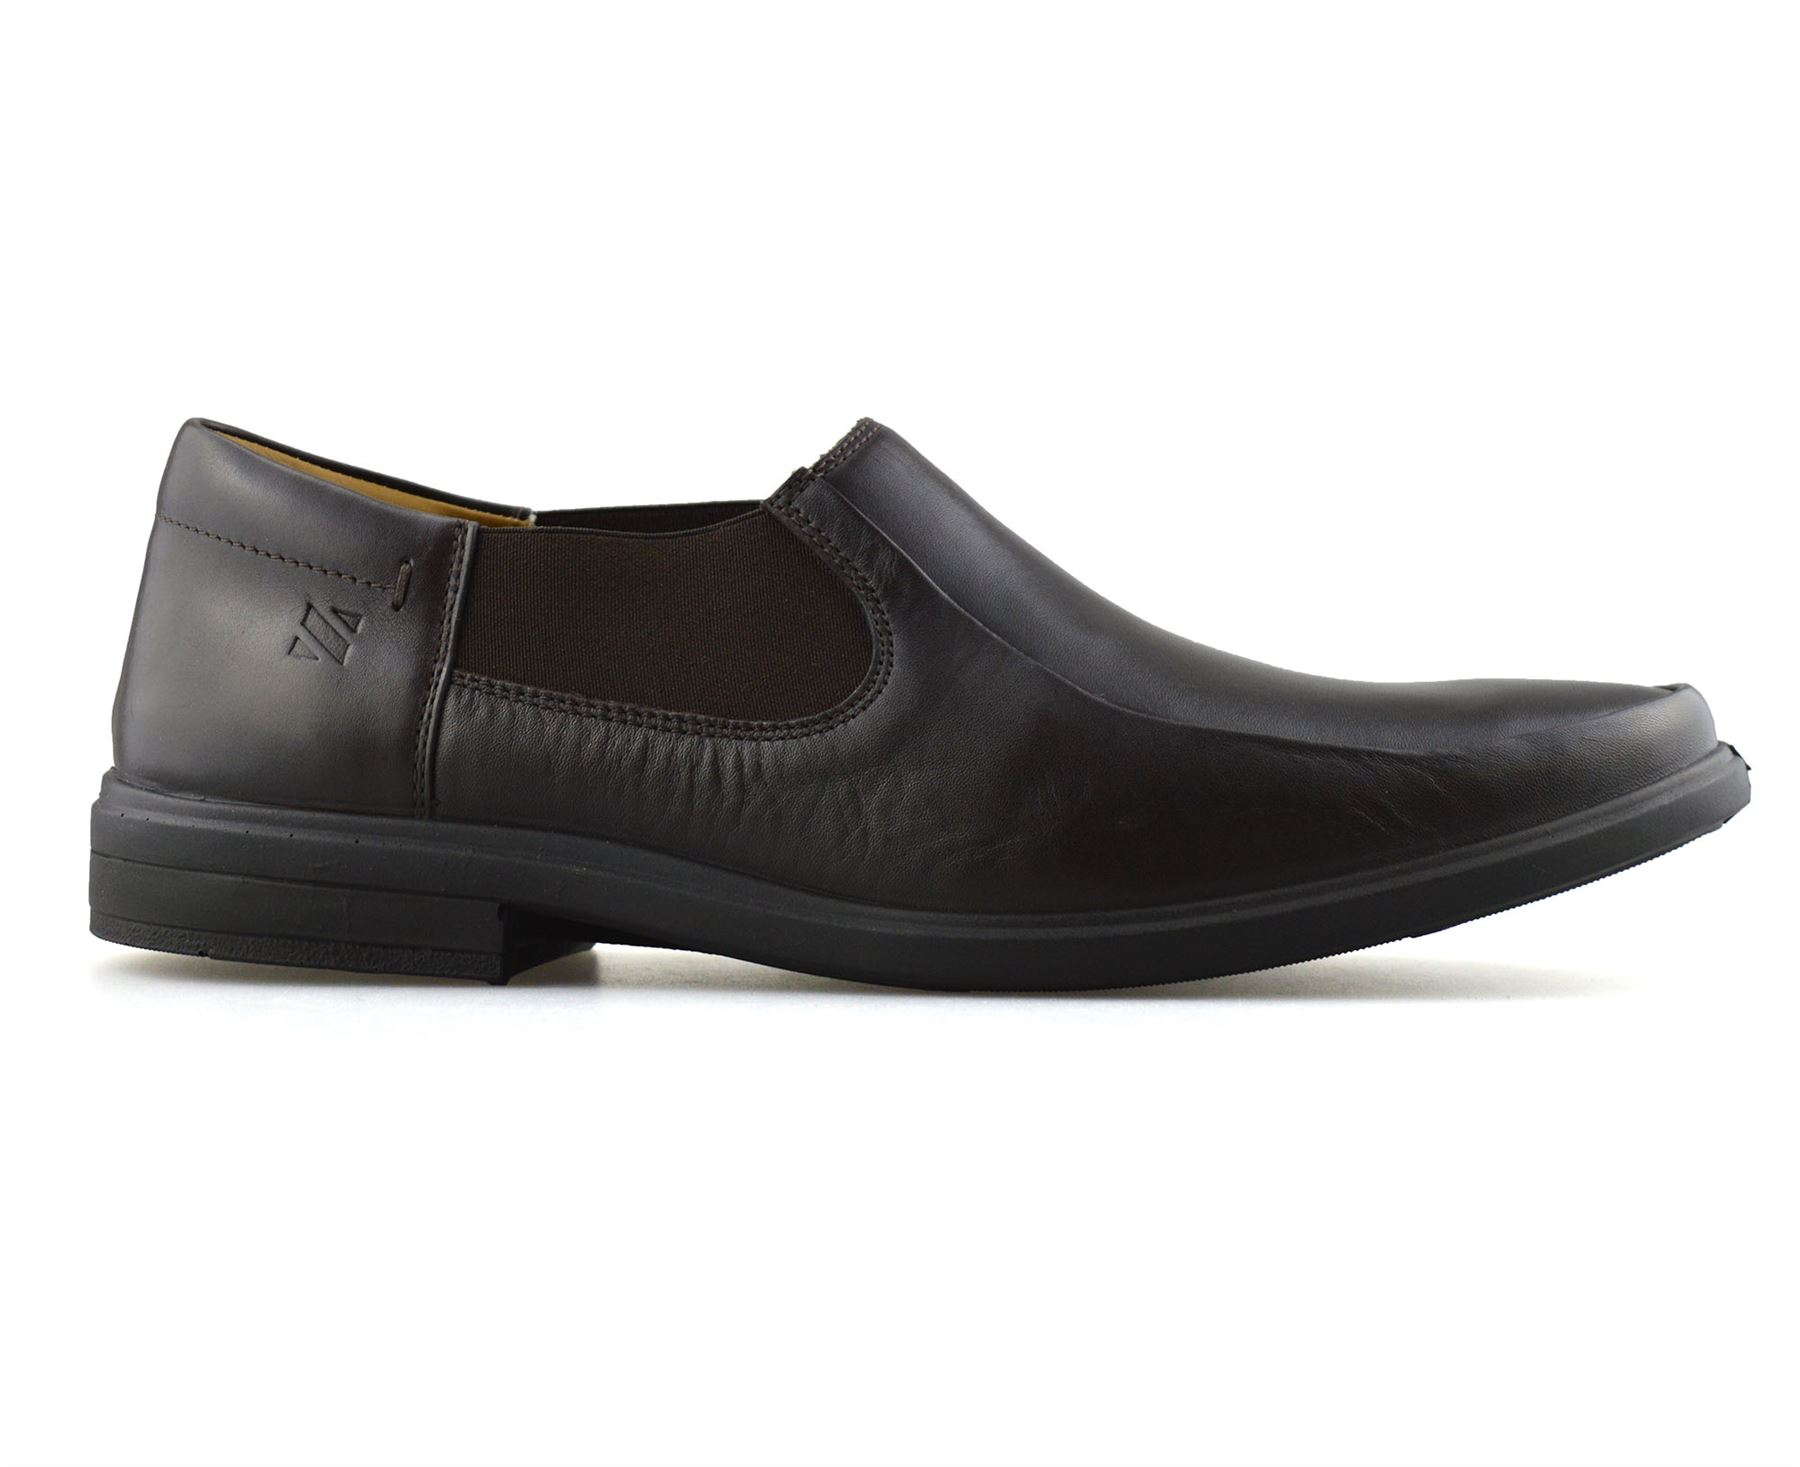 Mens-Leather-Slip-On-Casual-Smart-Designer-Mocassin-Work-Loafers-Shoes-Size thumbnail 9